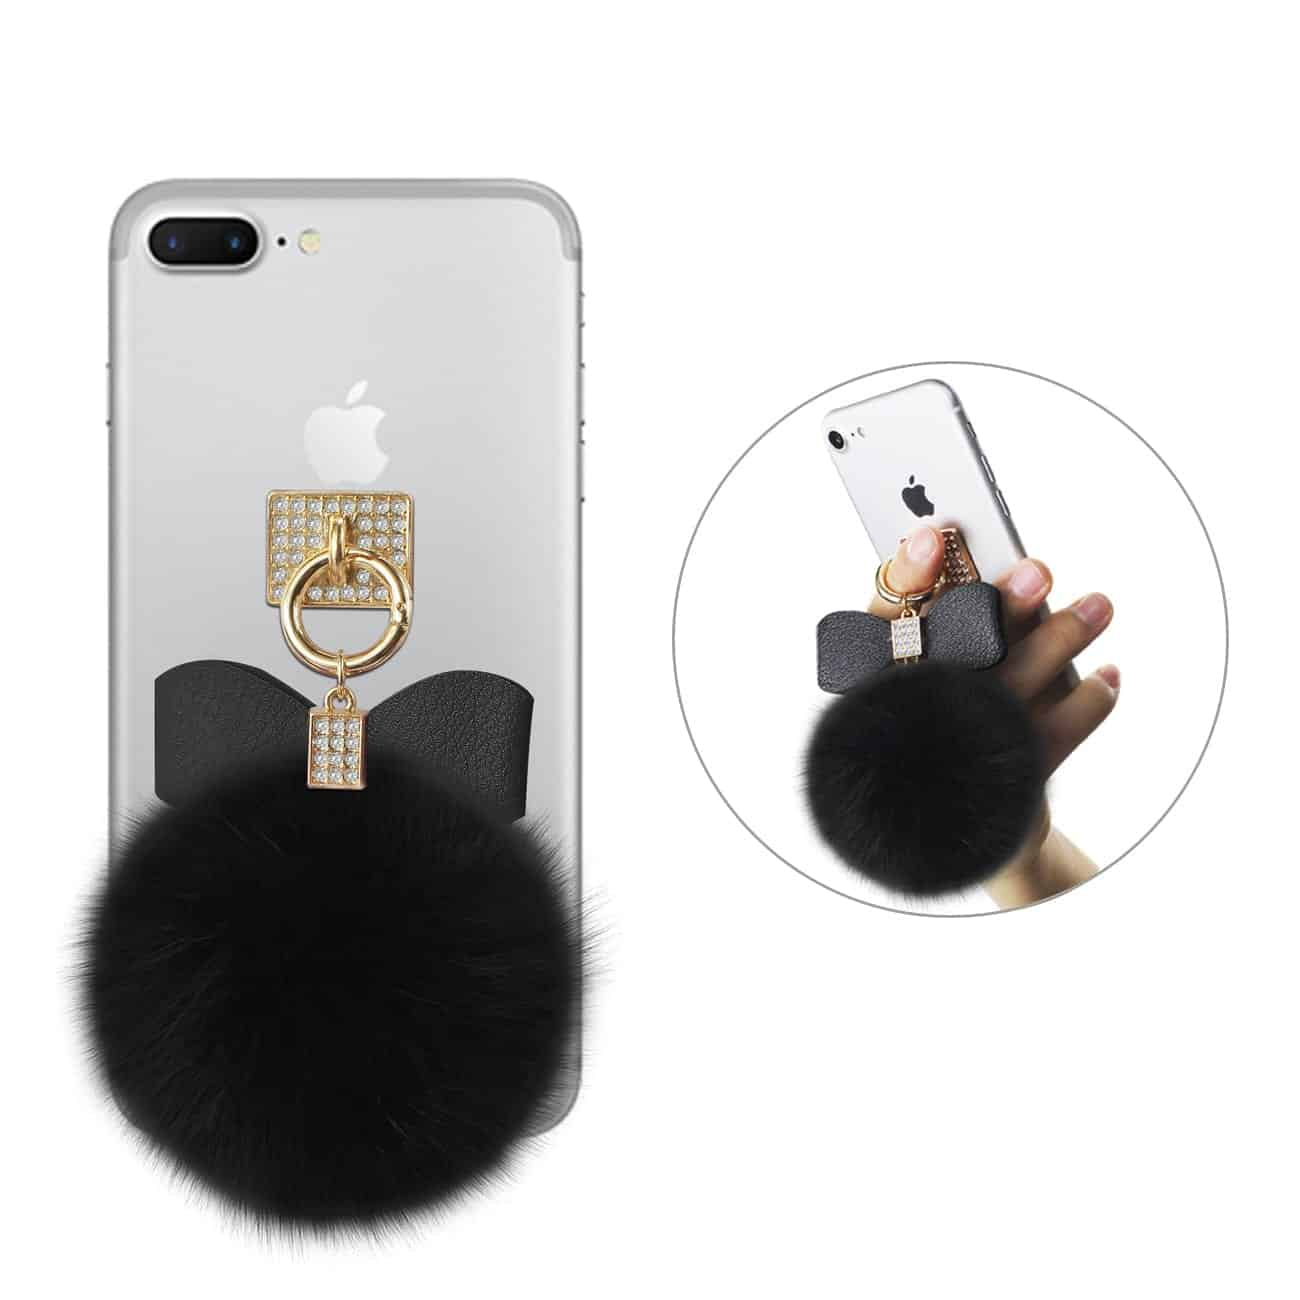 PHONE HOLDER/ FINGER LOOP GRIP WITH RHINESTONE SOFT PUFFY FUR BALL IN BLACK